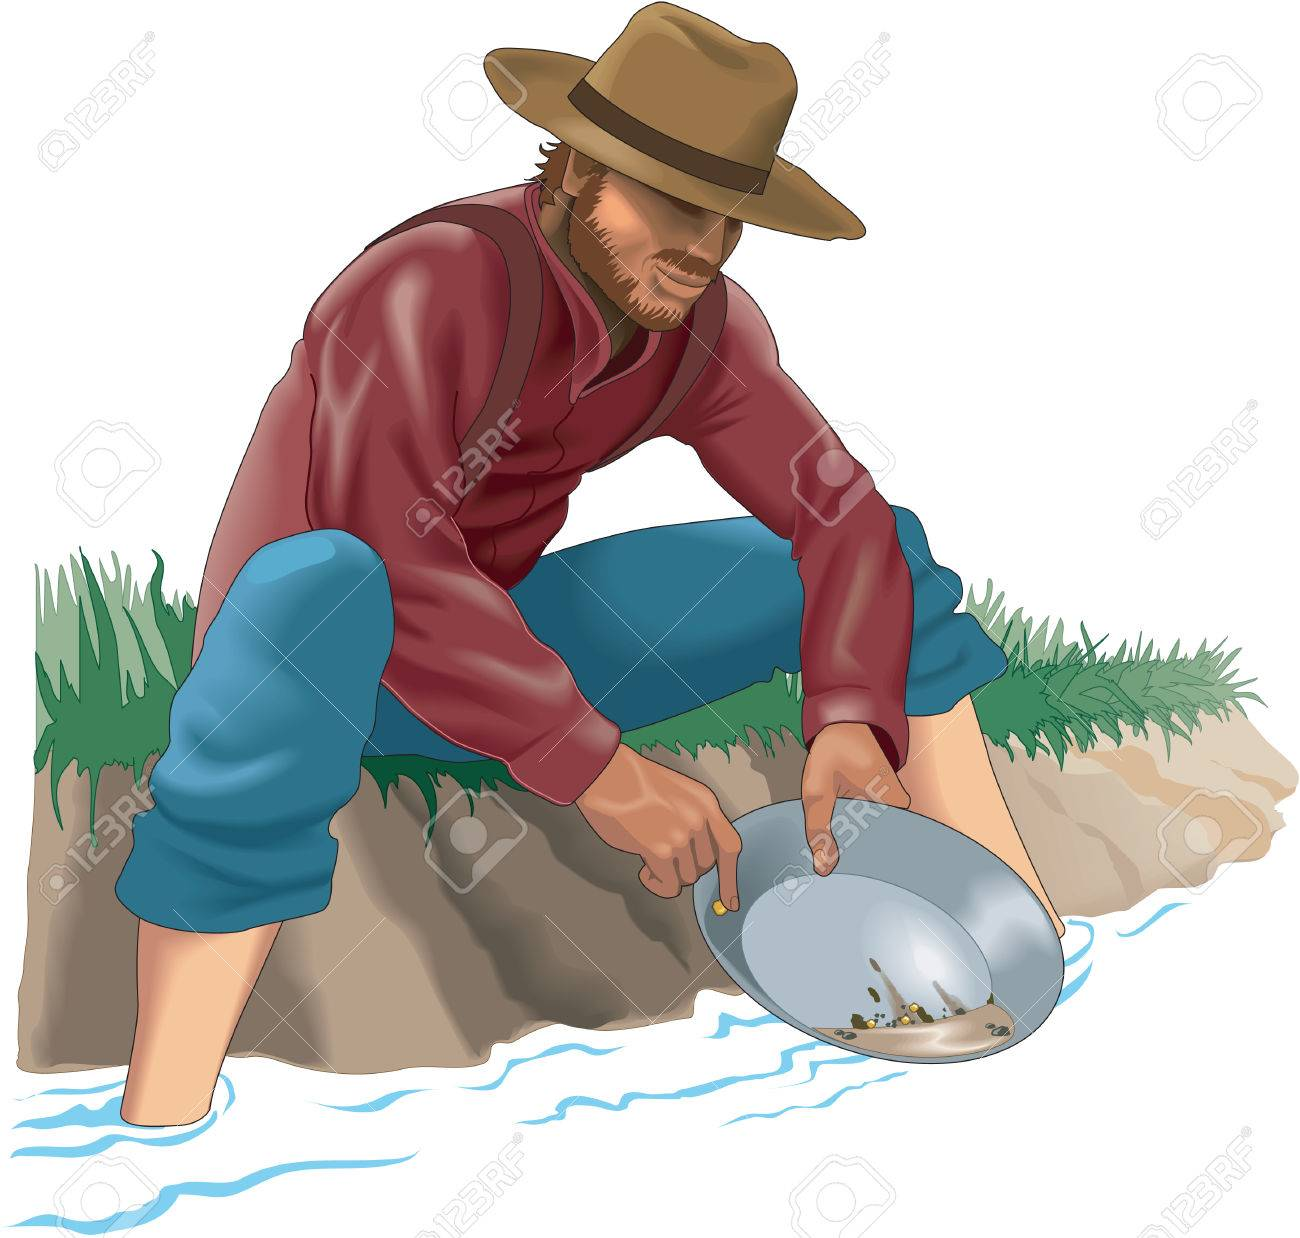 Gold Prospector Illustration.